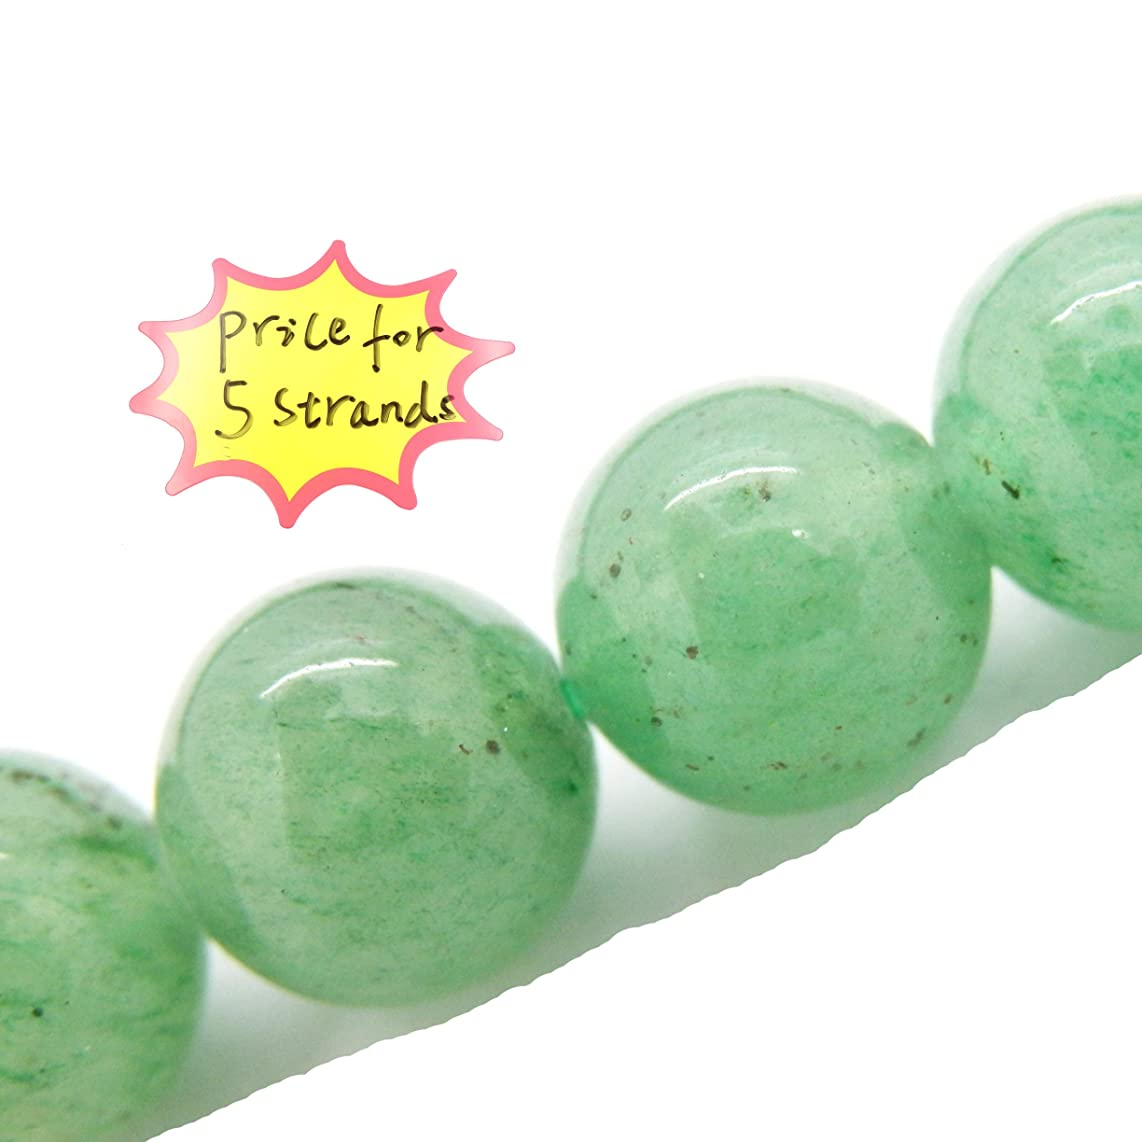 Gemstone Beads for Jewelry Making, Sold per Bag 5 Strands Inside, Green Aventurine 8mm